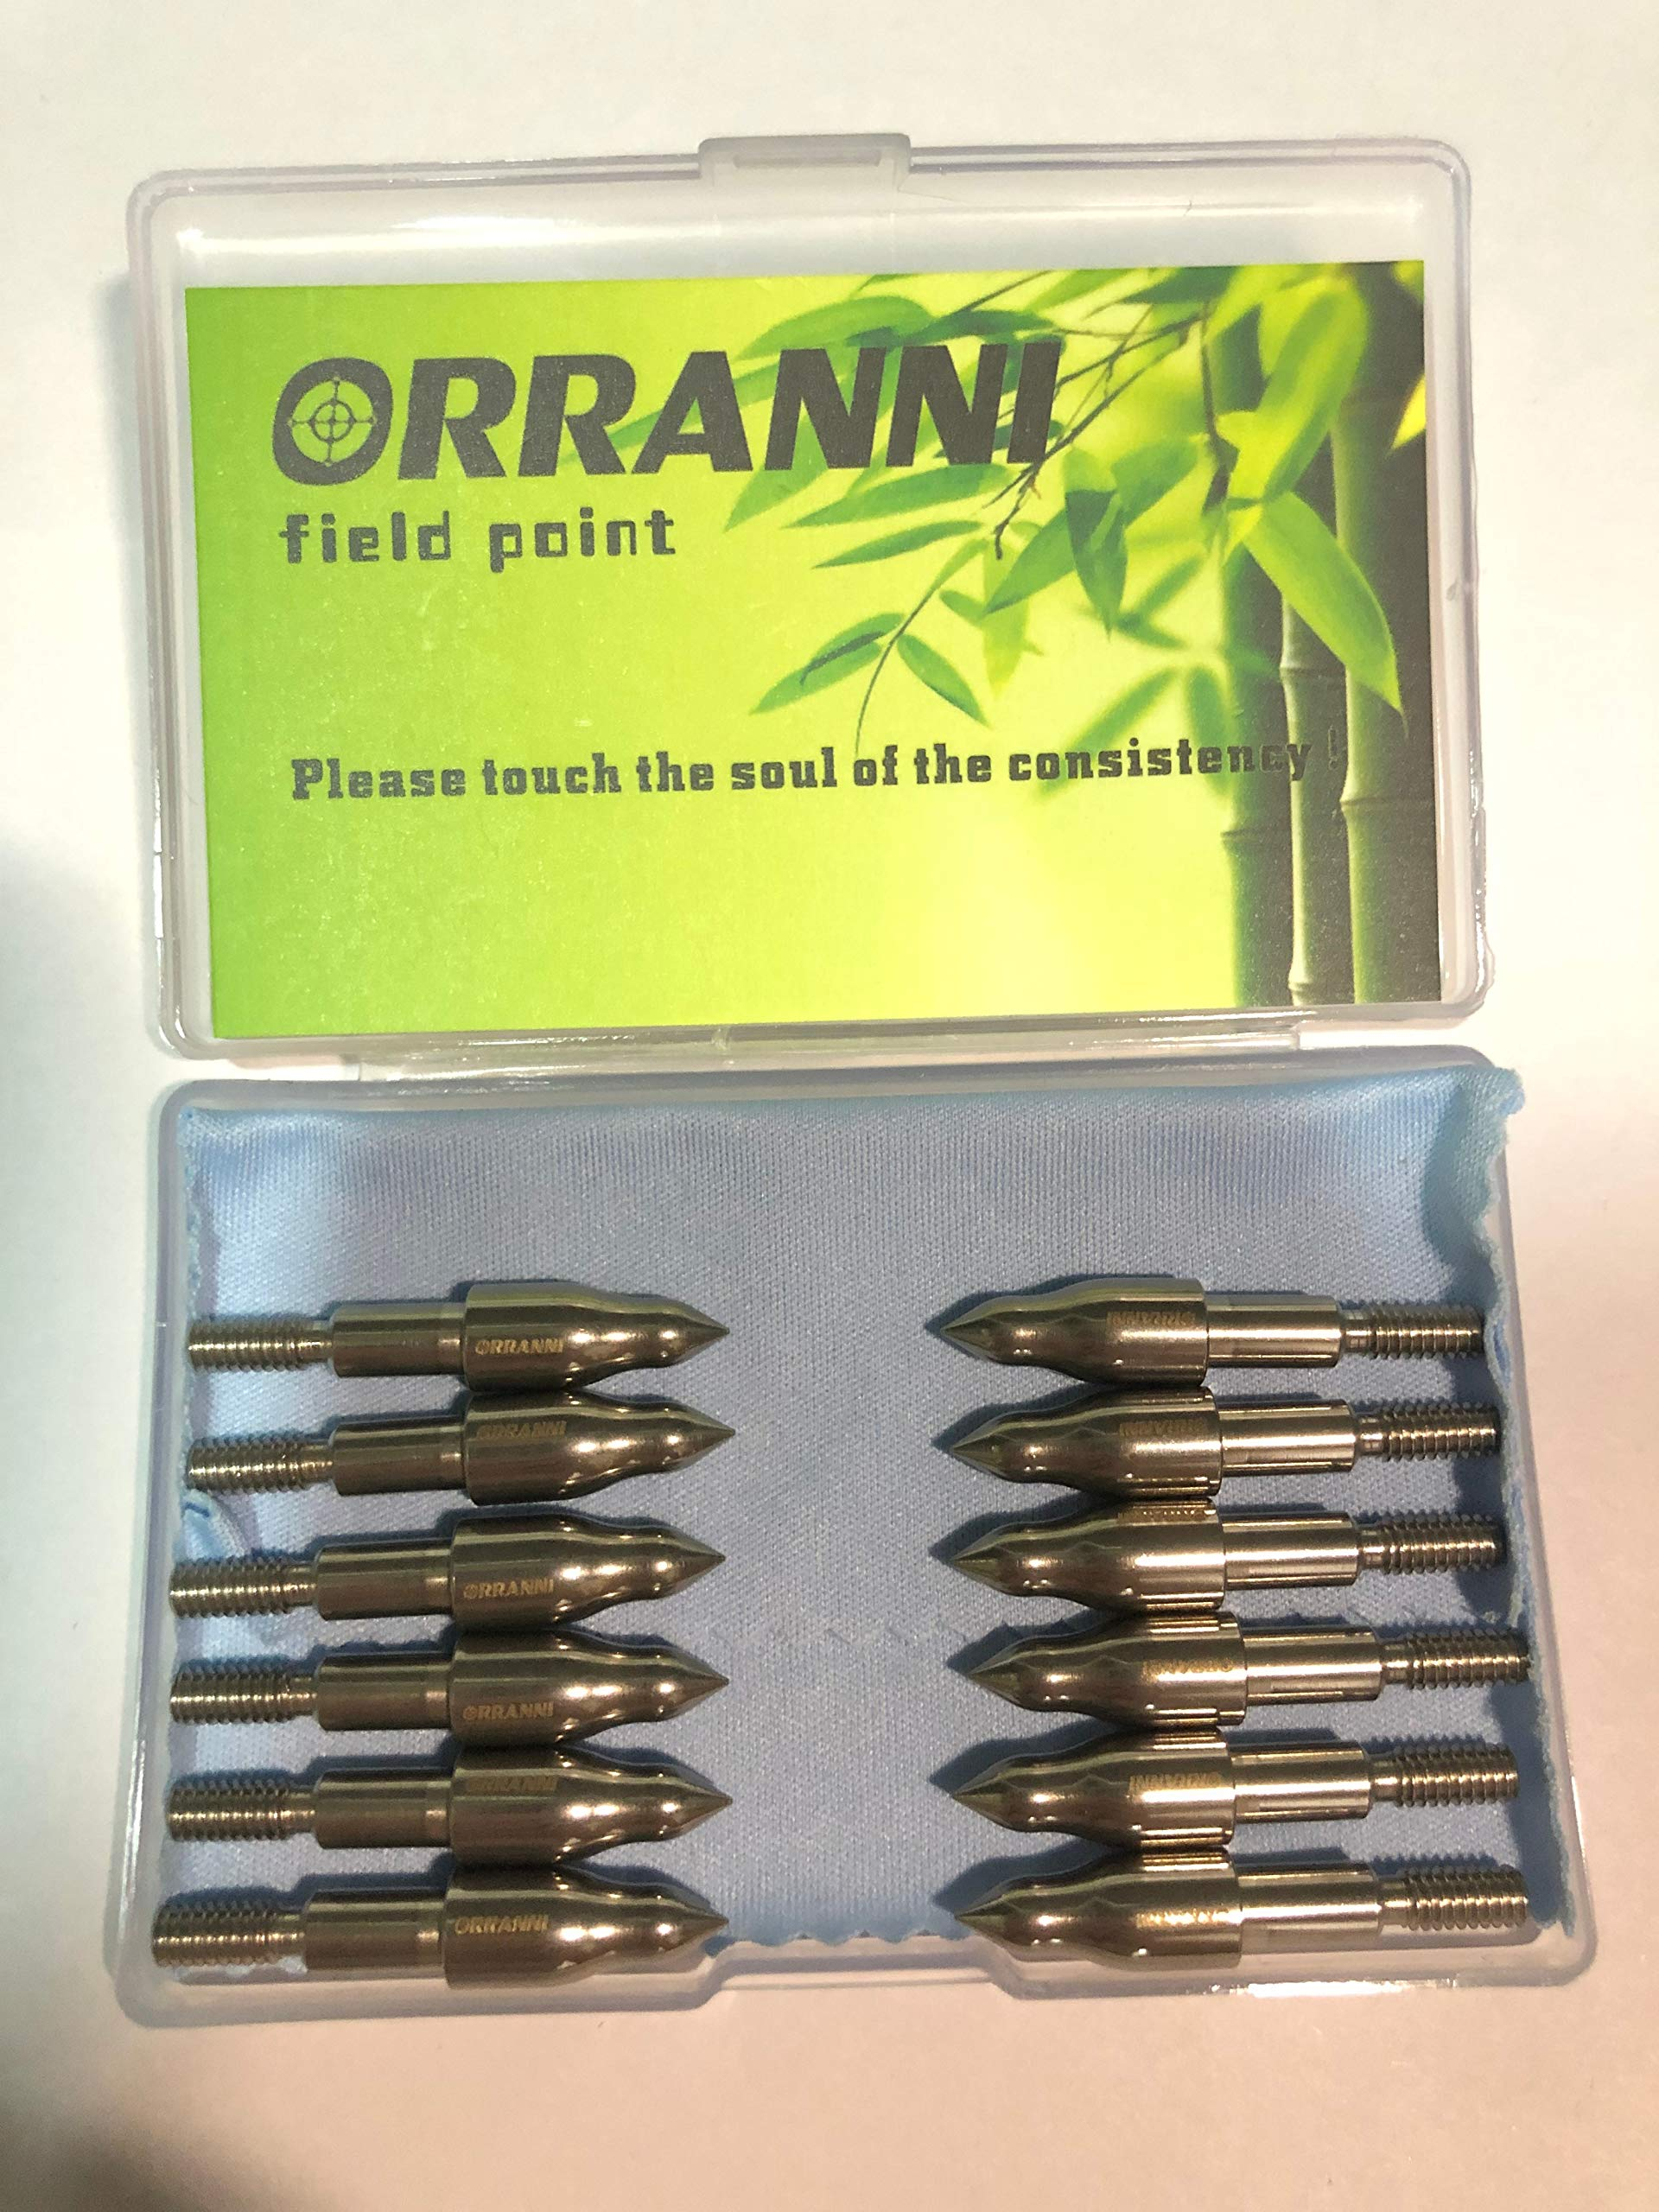 ORRANNI Archery Field Points,19/64'' Outside Diameter,100 Grains,Stainless Steel 8-32 UNC Screw in Combo Archery Field Tips(1 Dozen) by ORRANNI